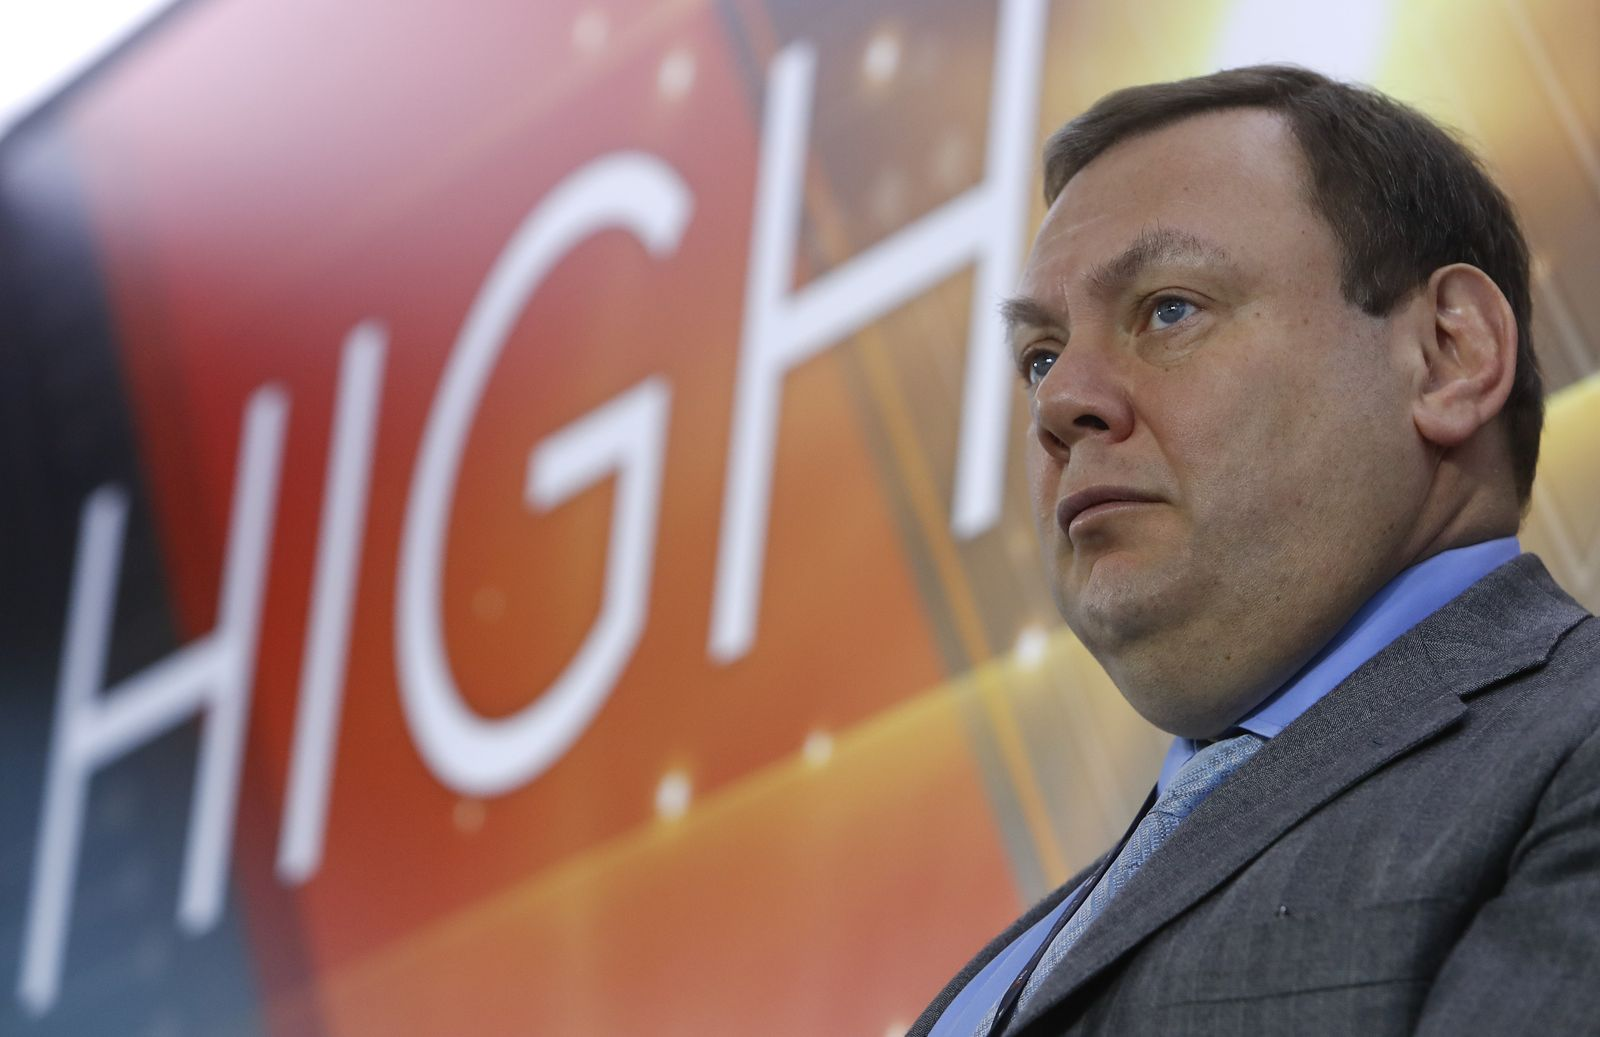 Member of Supervisory Board of ?5 Retail Group Fridman attends a ceremony as ?5 Retail Group starts trading on Moscow Exchange